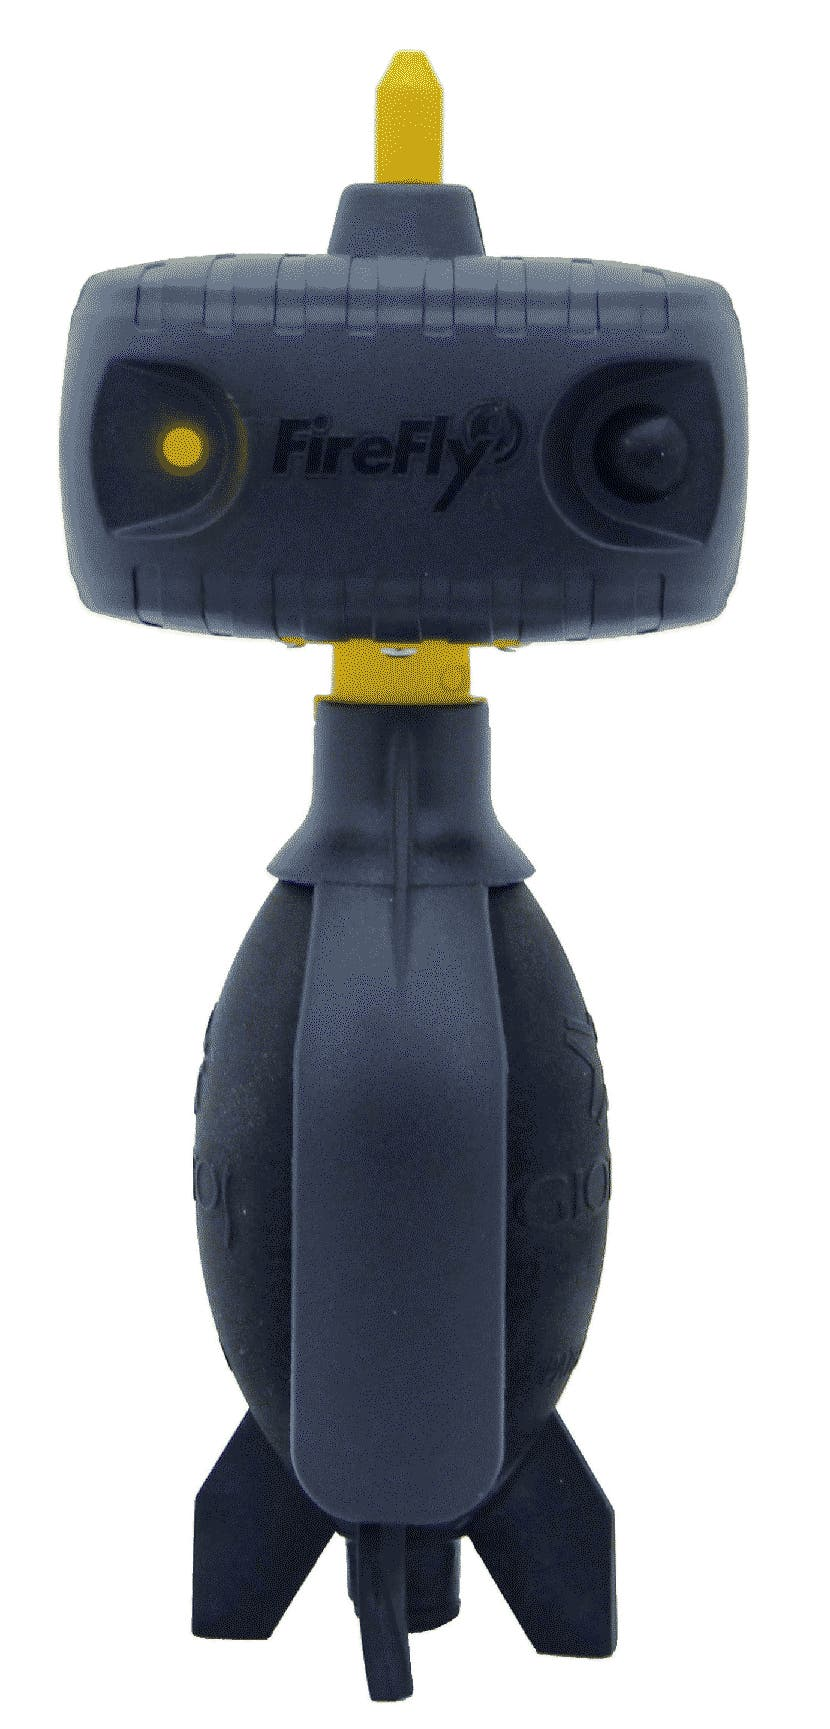 Get Rid of All Your Dust Problems with a Blow from Firefly